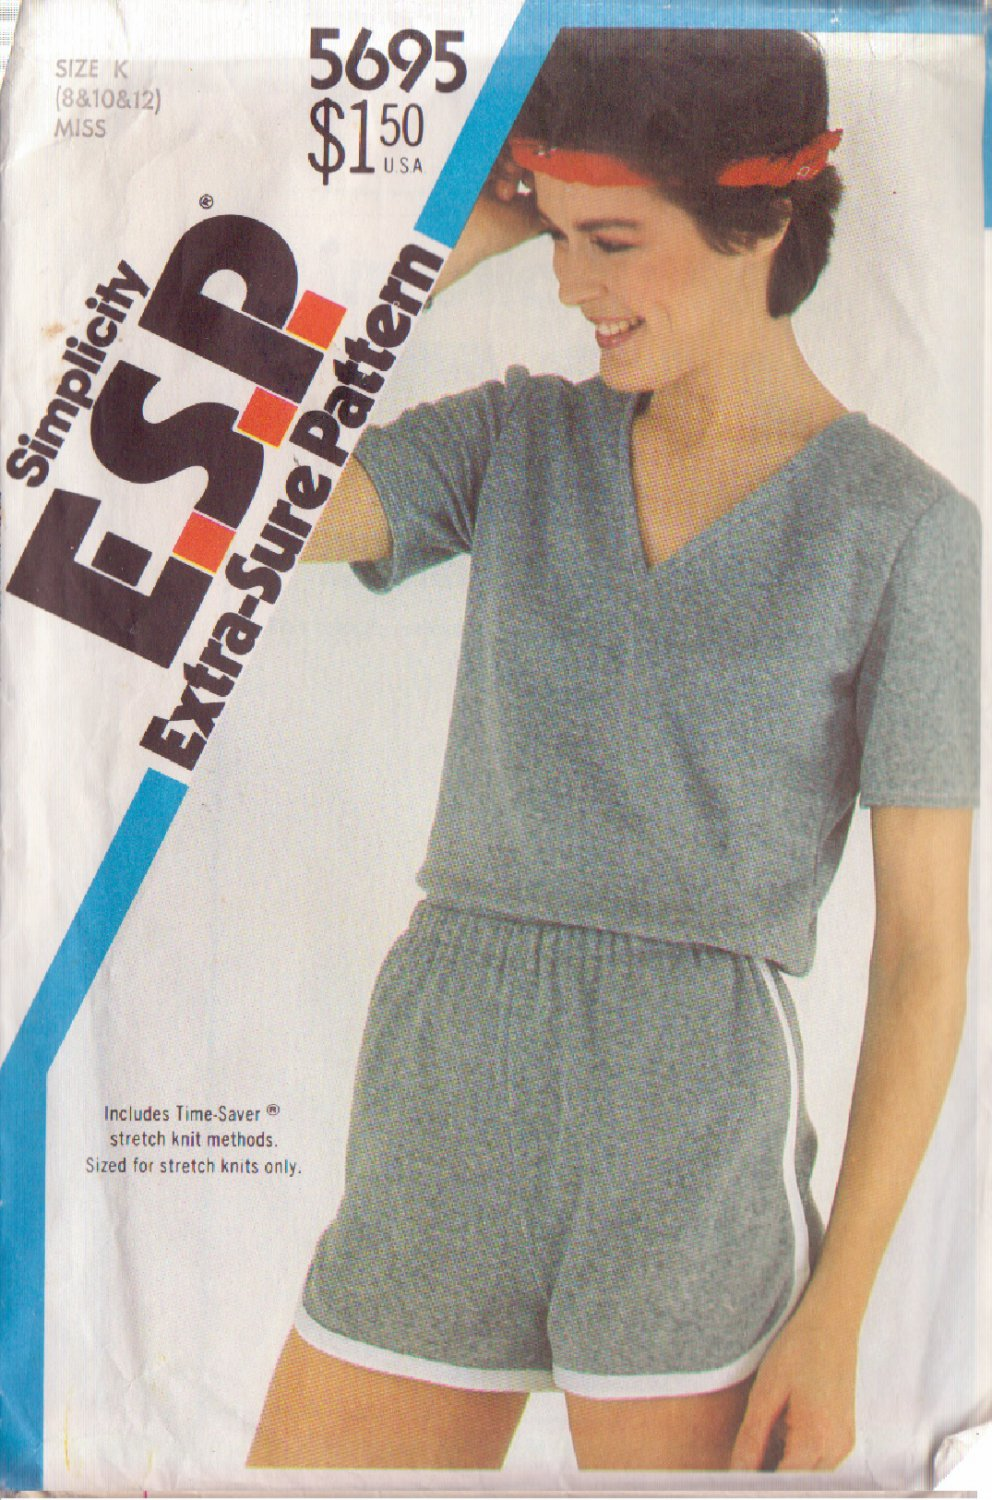 SIMPLICITY VINTAGE PATTERN 5695 MISSES' PULLOVER TOP, PULL ON SHORTS SZS 8/10/12